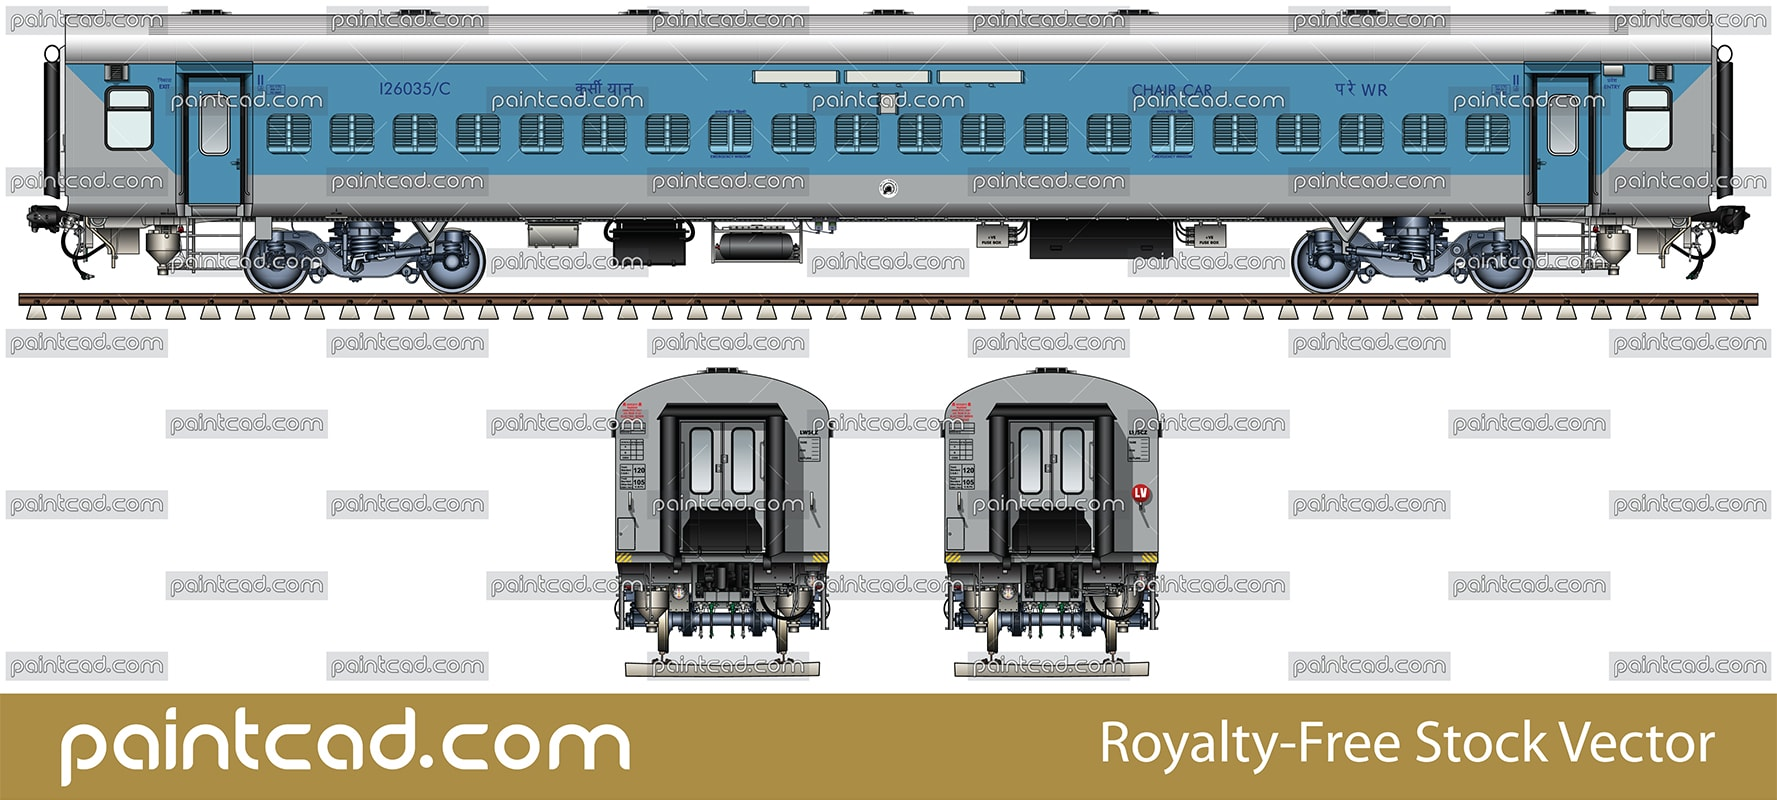 lhb non ac chair car in livery of indian western railway wr rh paintcad com Circuit Breaker Box Electrical Panel